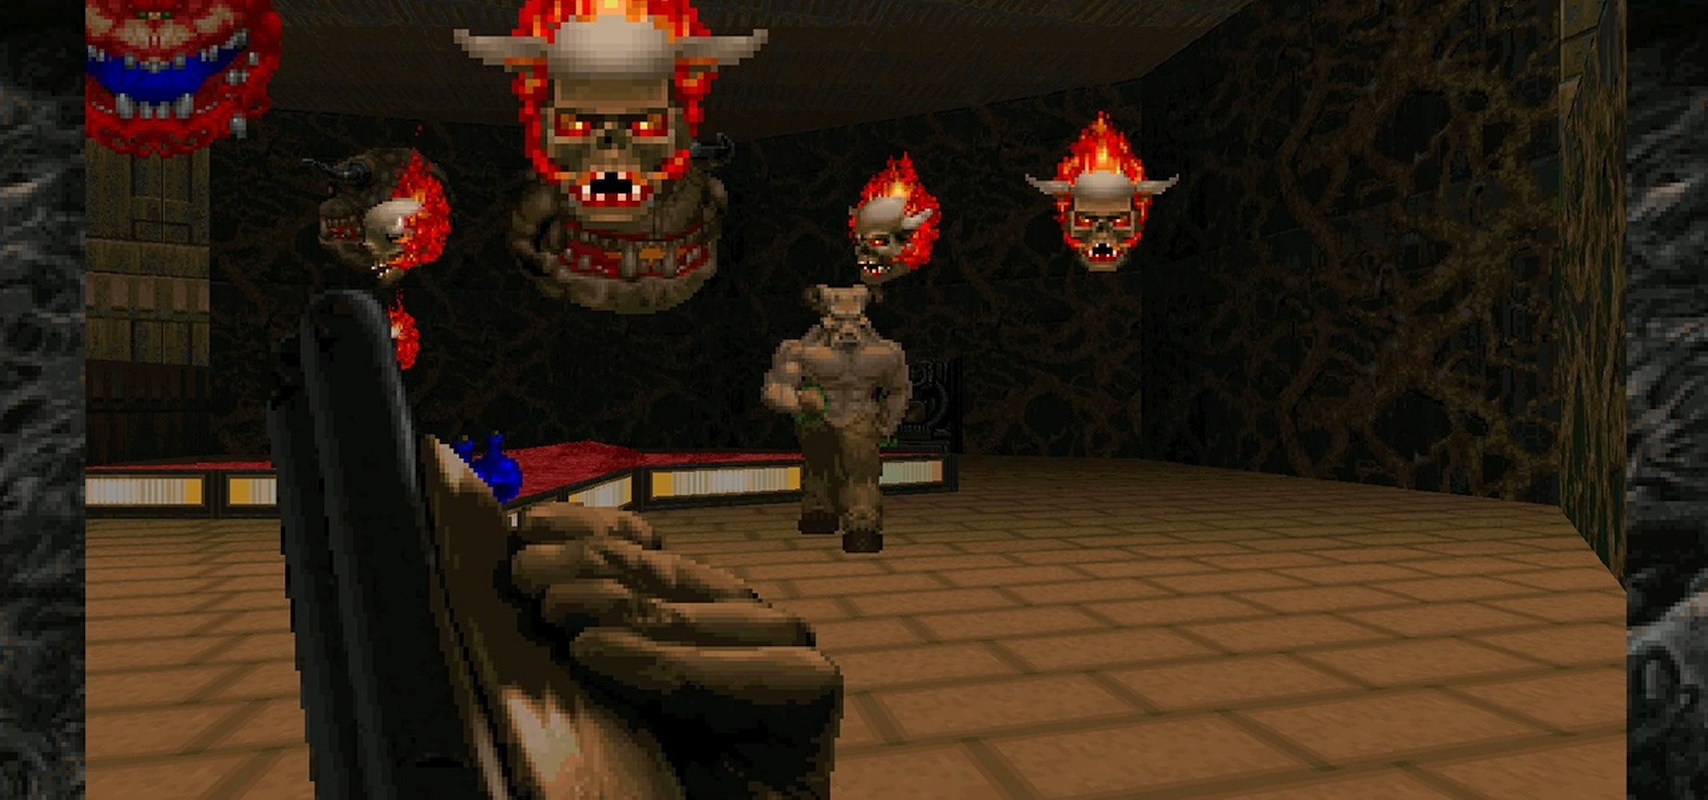 DOOM And DOOM II Updated To Include Quick Save And 60 FPS Support